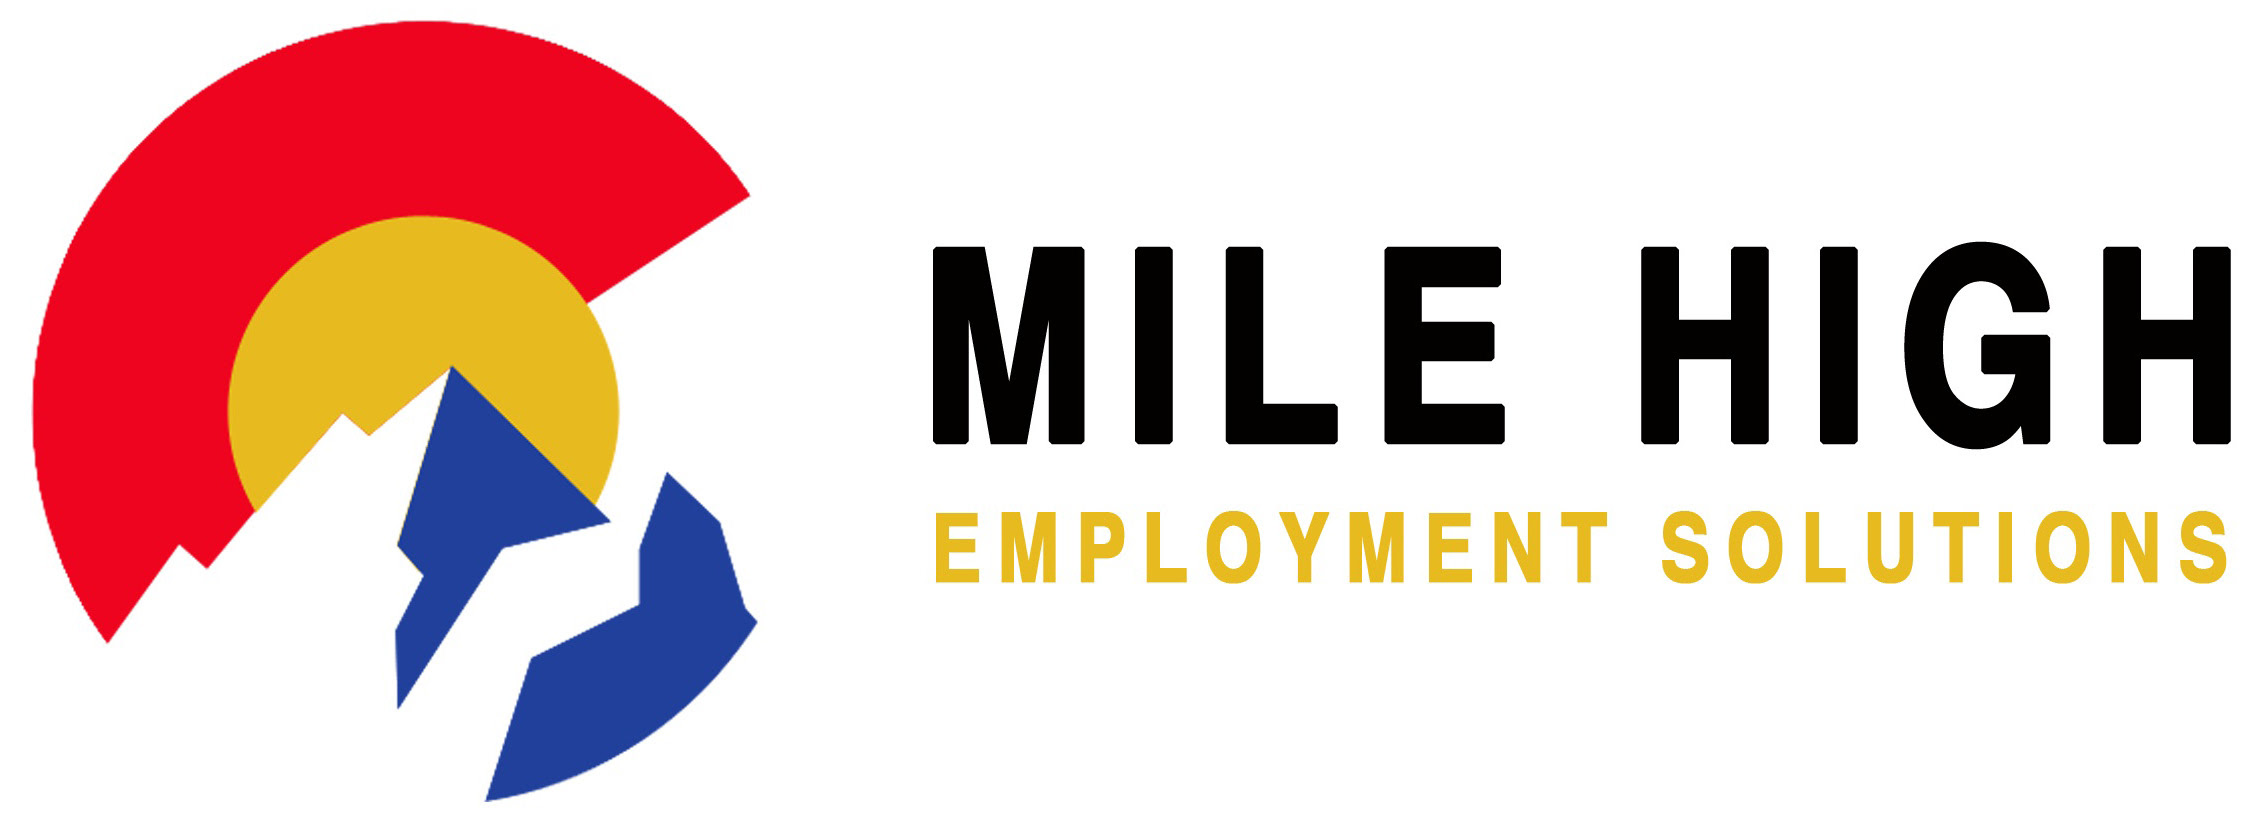 Delivery Driver Job In Aurora Mile High Employment